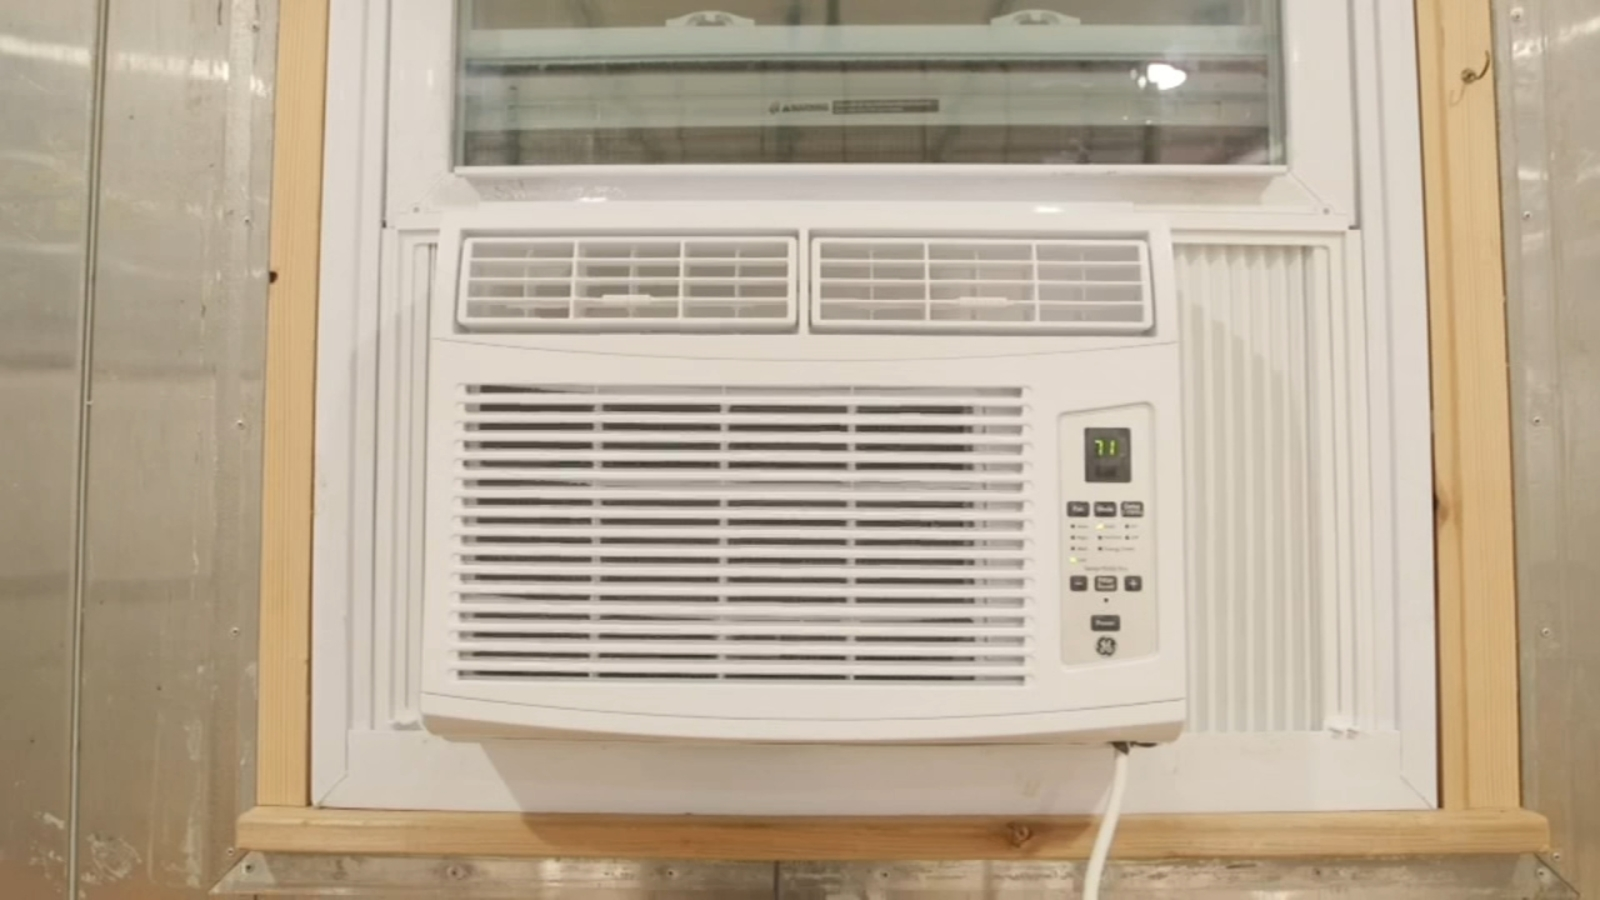 Consumer Reports Tests Best Window Air Conditioning Units